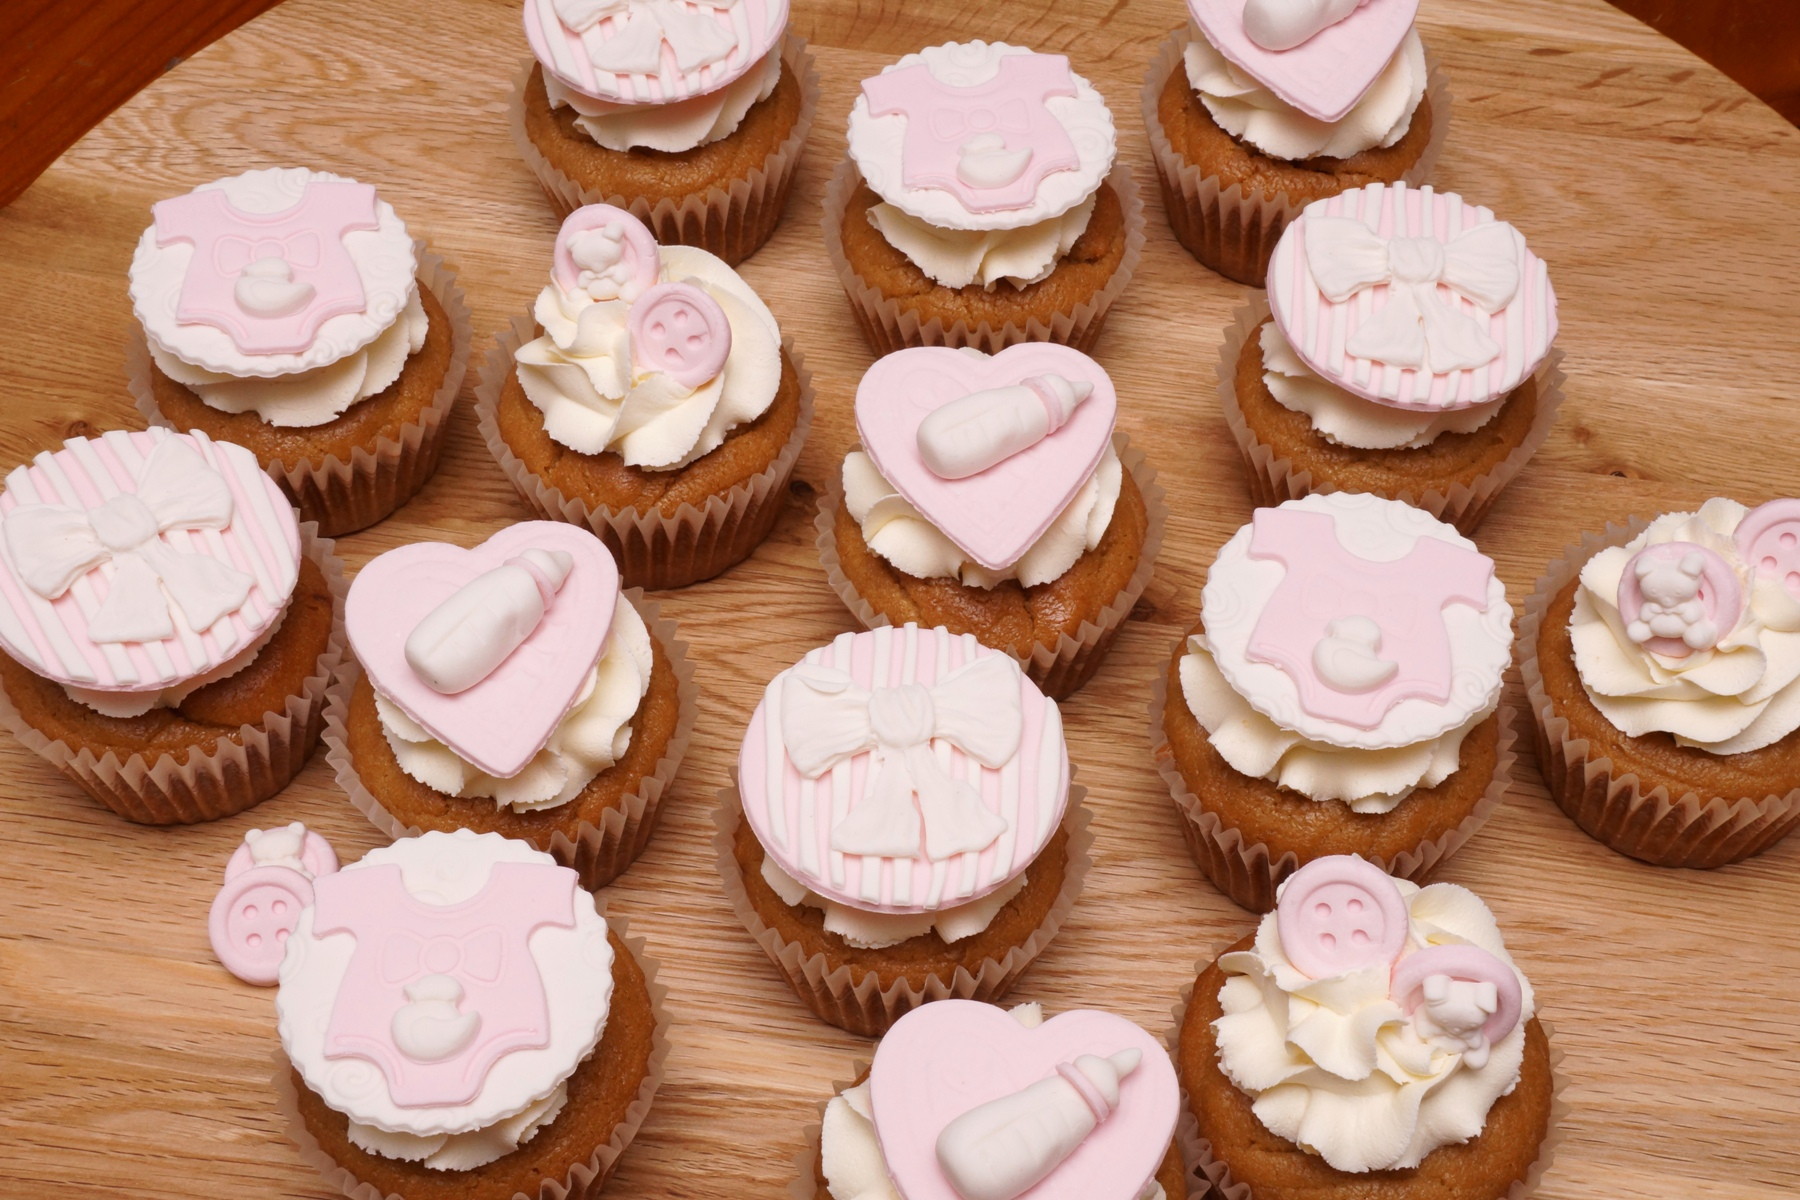 Pink Baby shower cupcakes 7.04.19